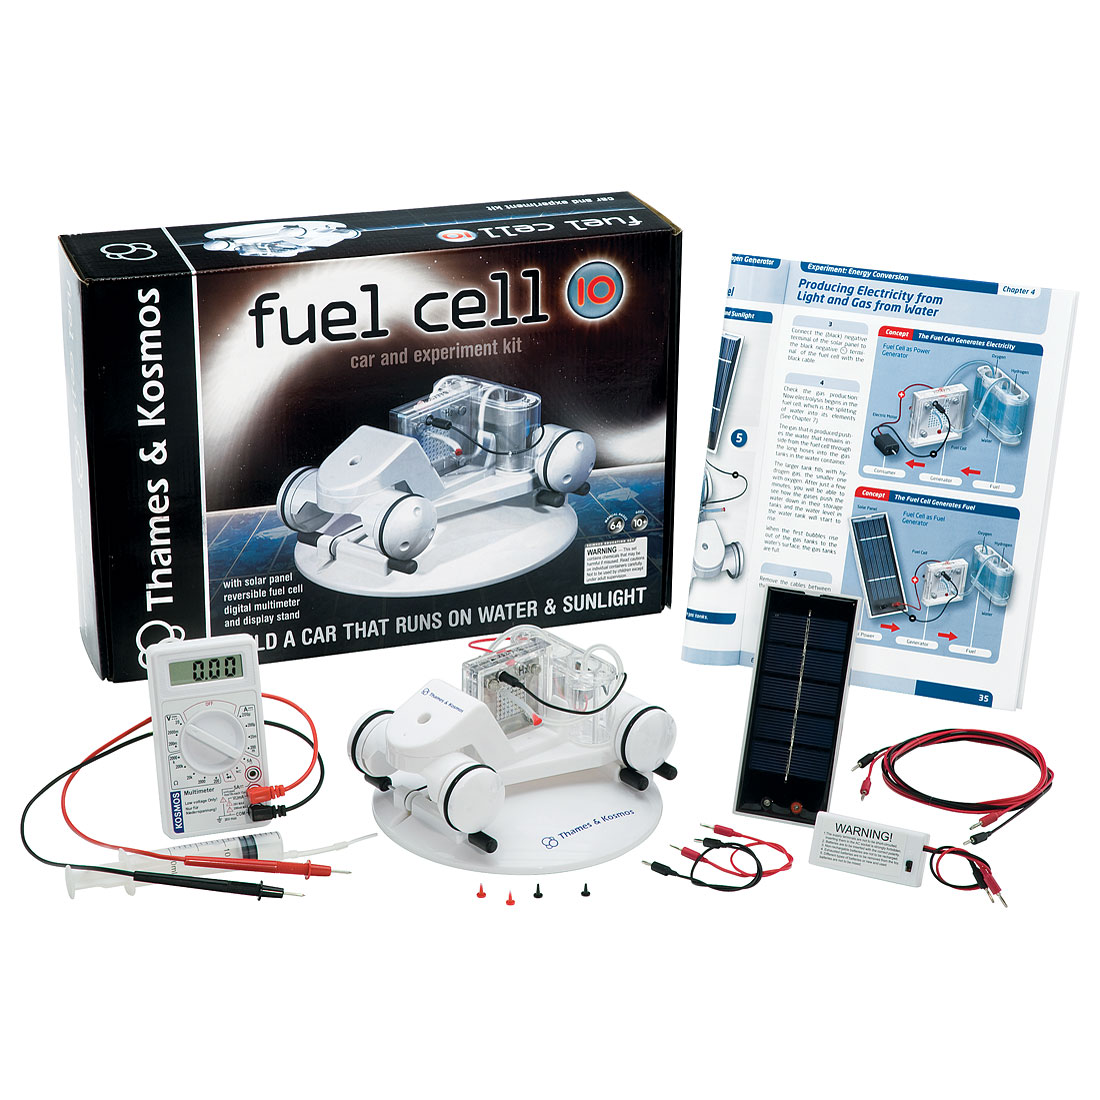 Fuel Cell 10 Car Kit W